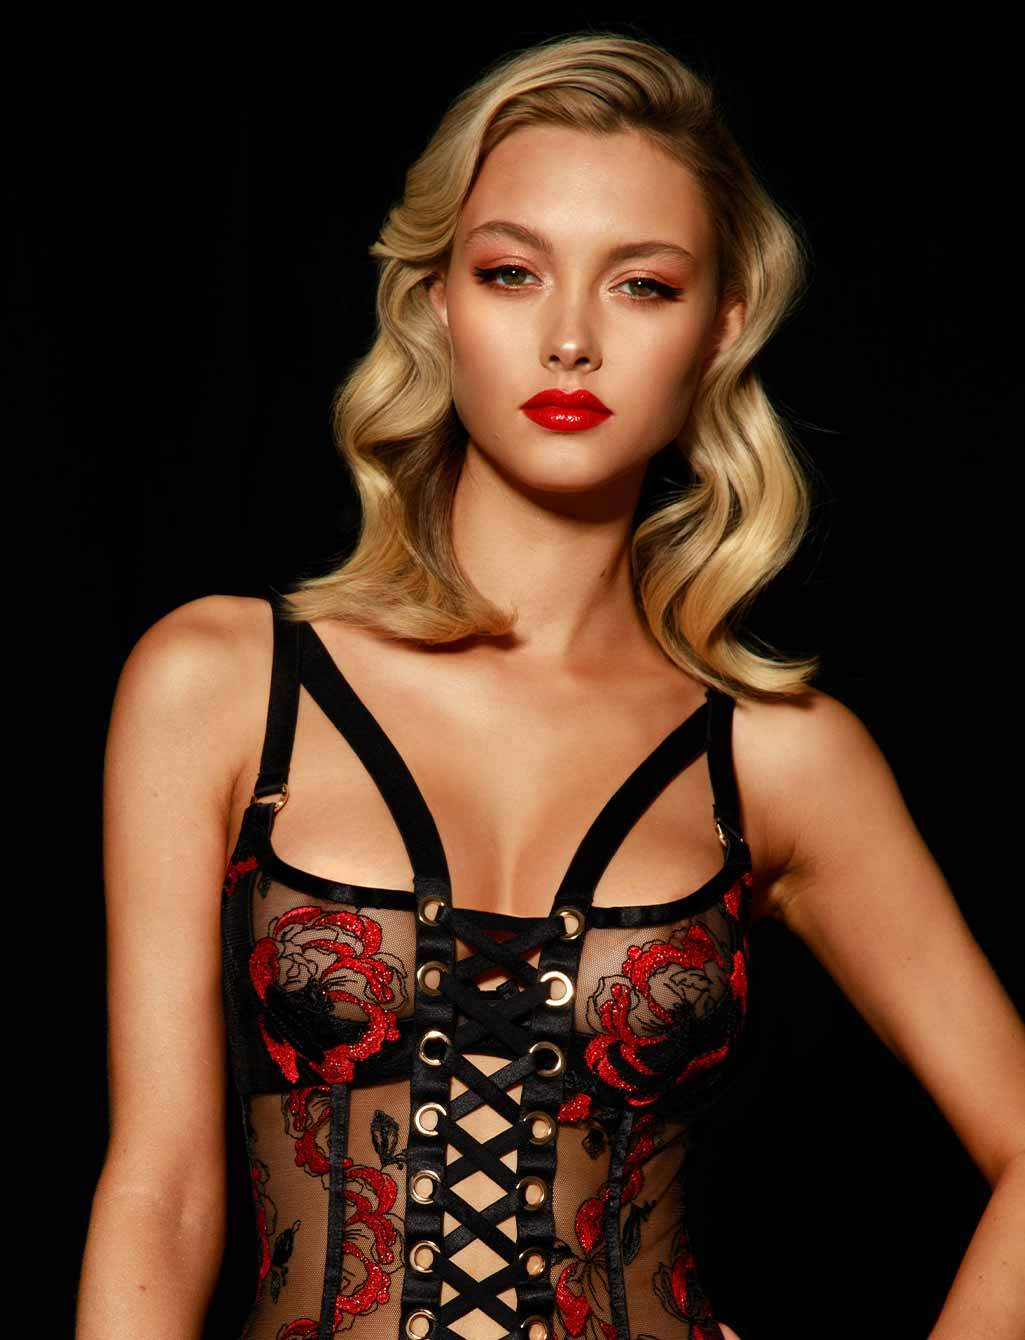 Freyah Lace Up Black & Red Bustier - Shop Corsets & Bodysuits | Honey Birdette